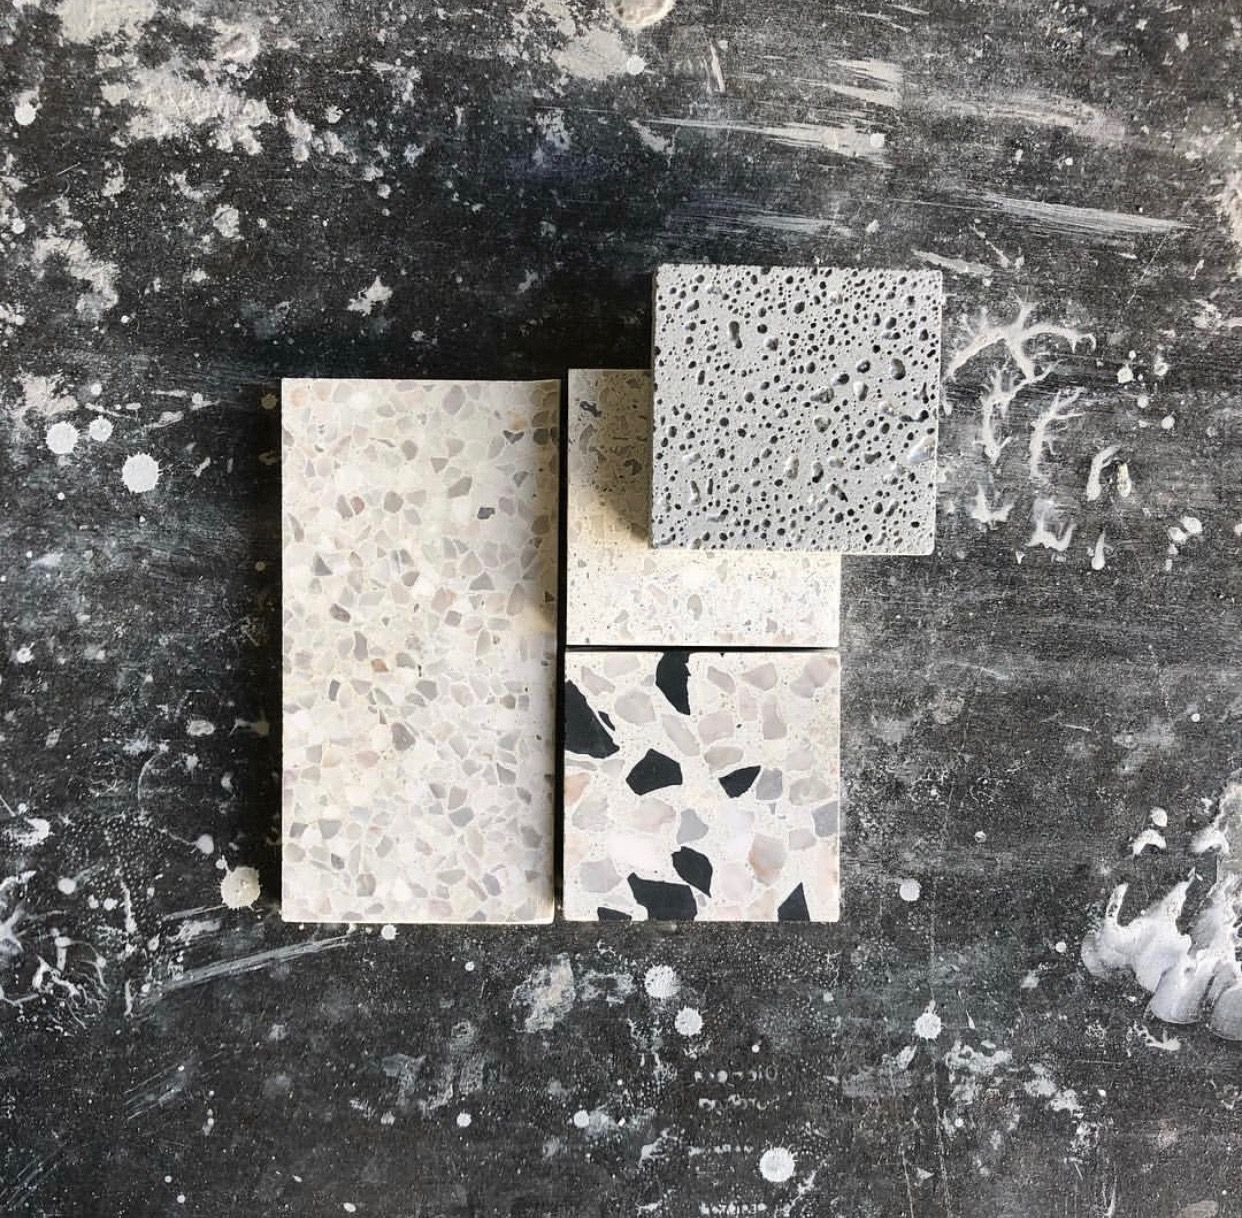 Today S Factory Palette Layering Raw Concrete Beauty And Texture